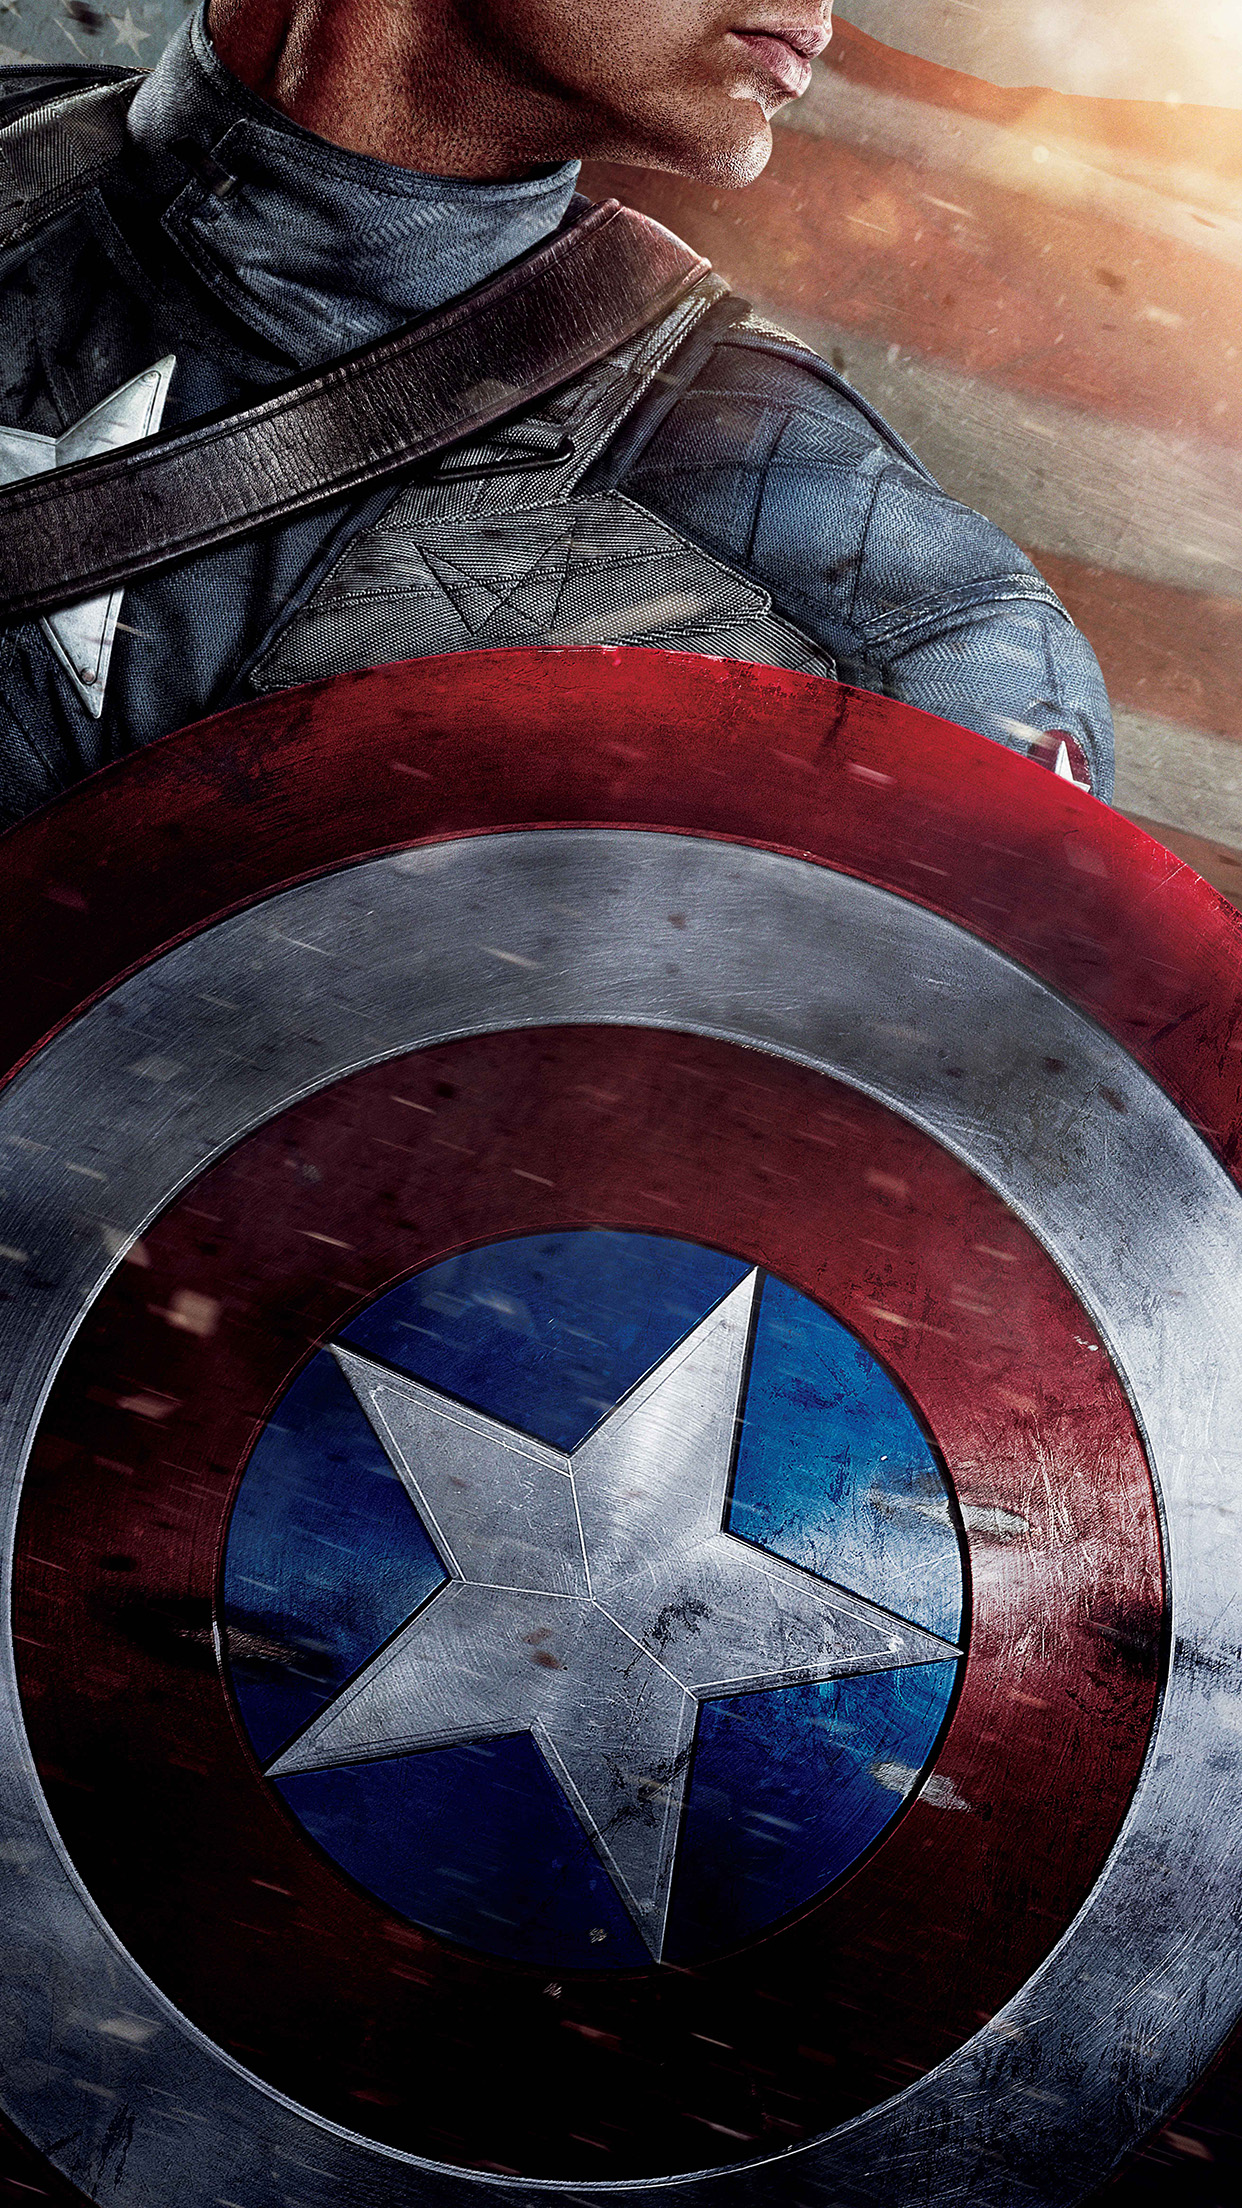 Ap29 Captain America Poster Film Hero Art Wallpaper